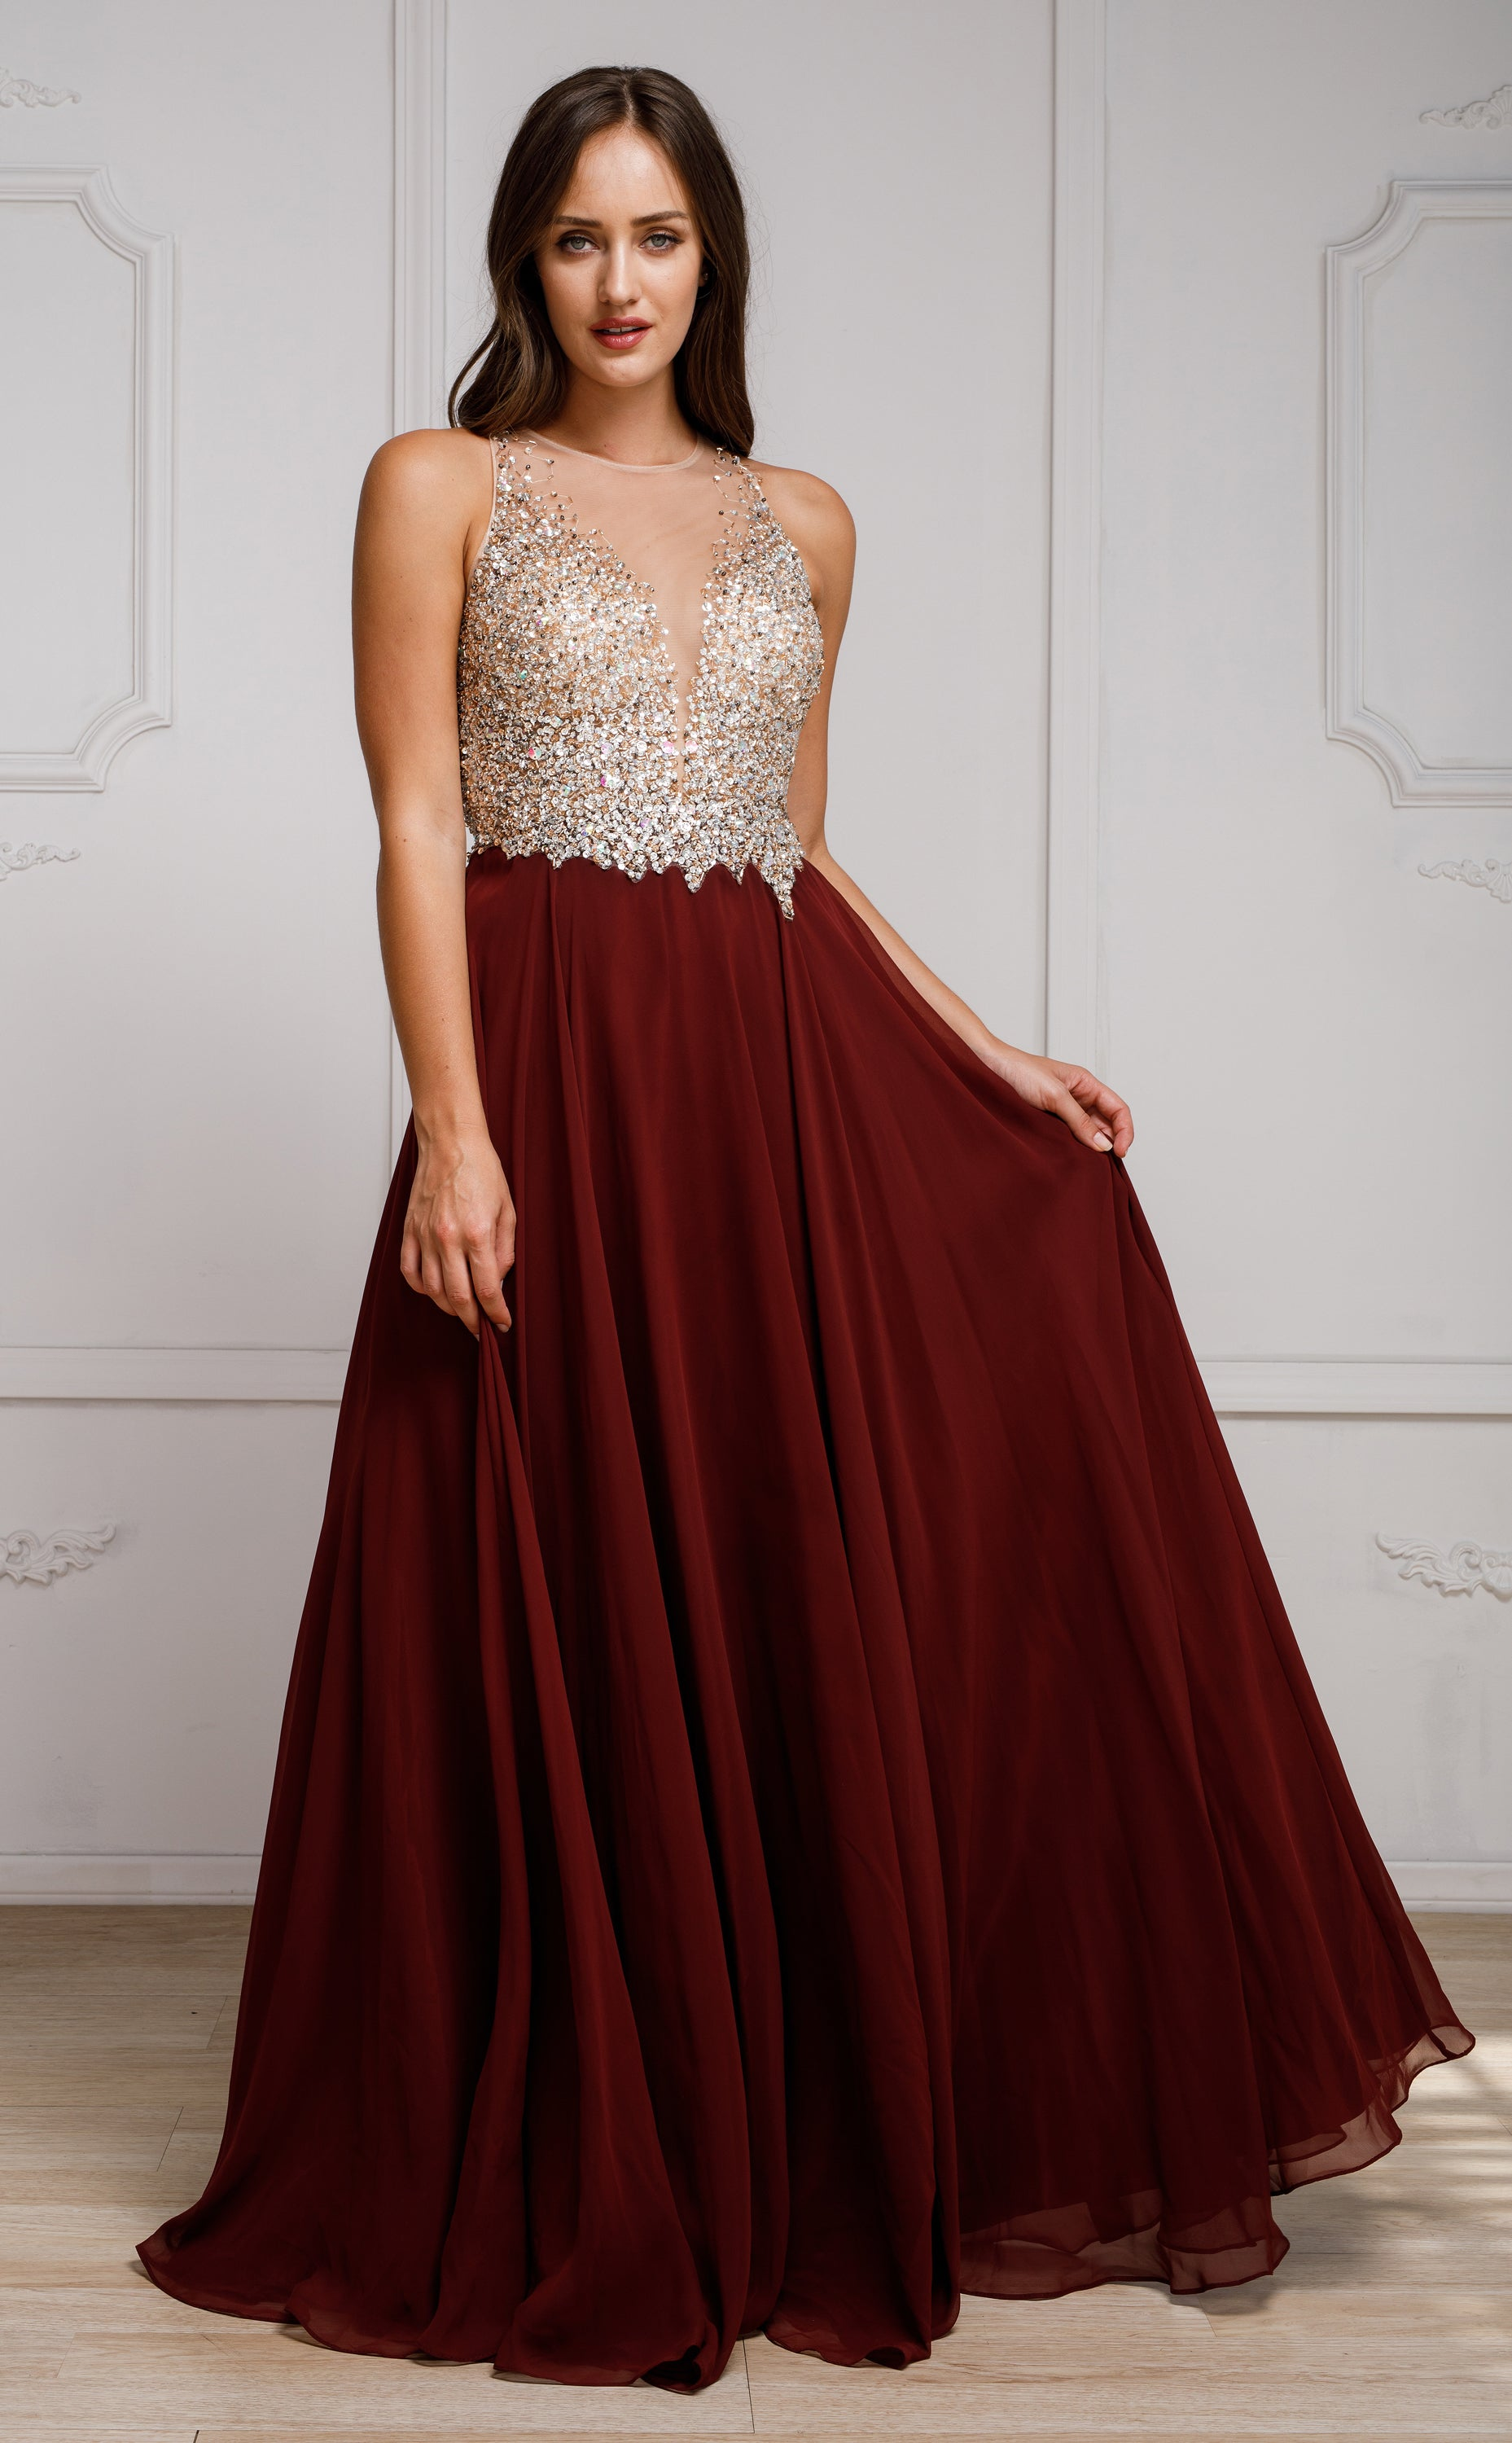 Image of Sequined Plunging Neckine Prom Gown in Burgundy